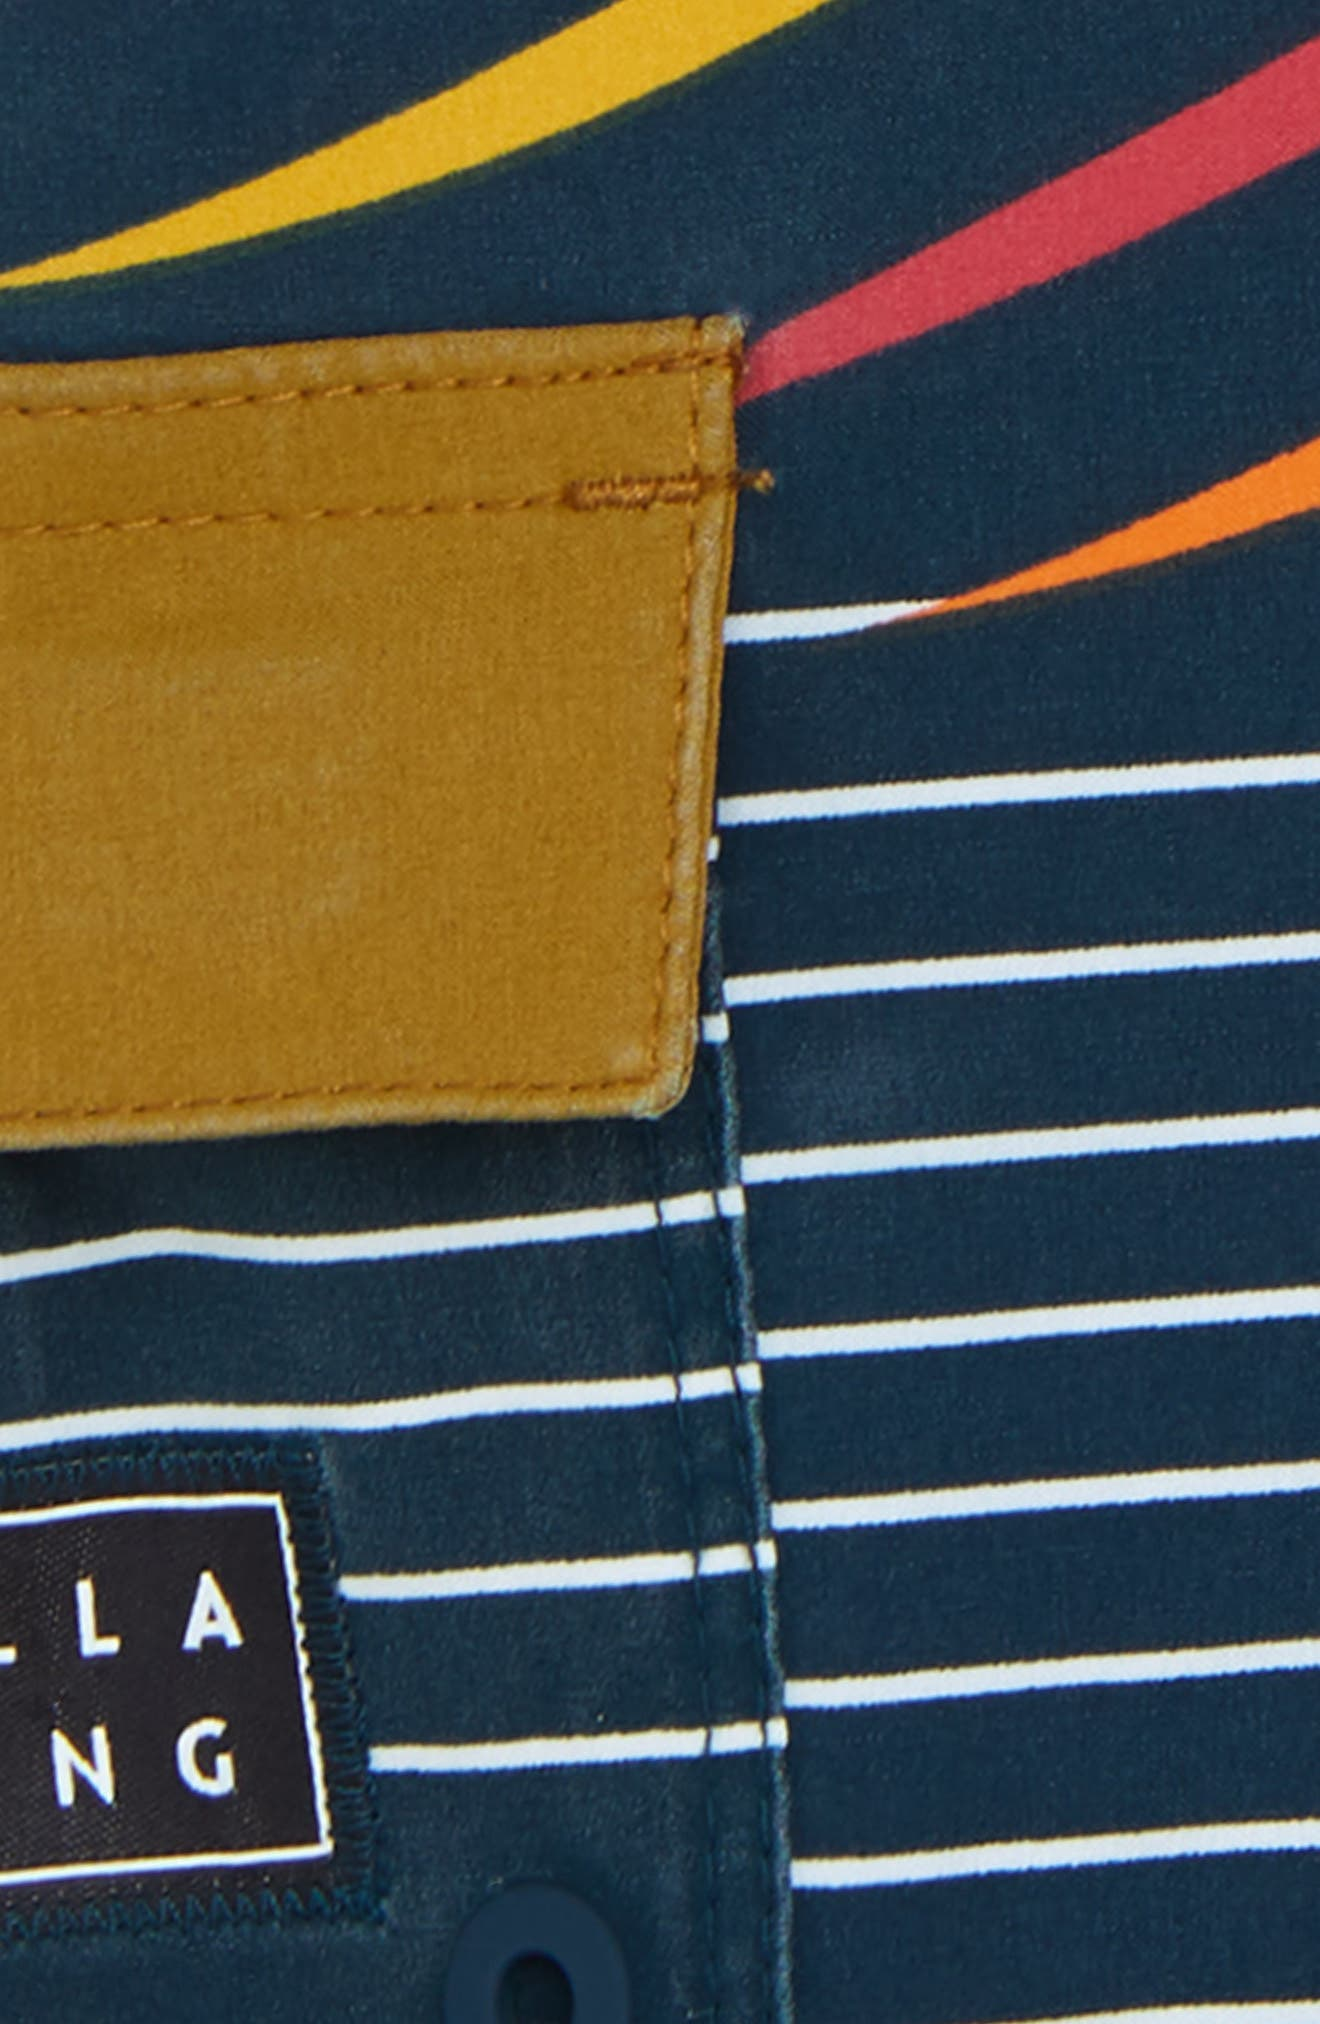 Sundays X Stripe Board Shorts,                             Alternate thumbnail 2, color,                             NAVY